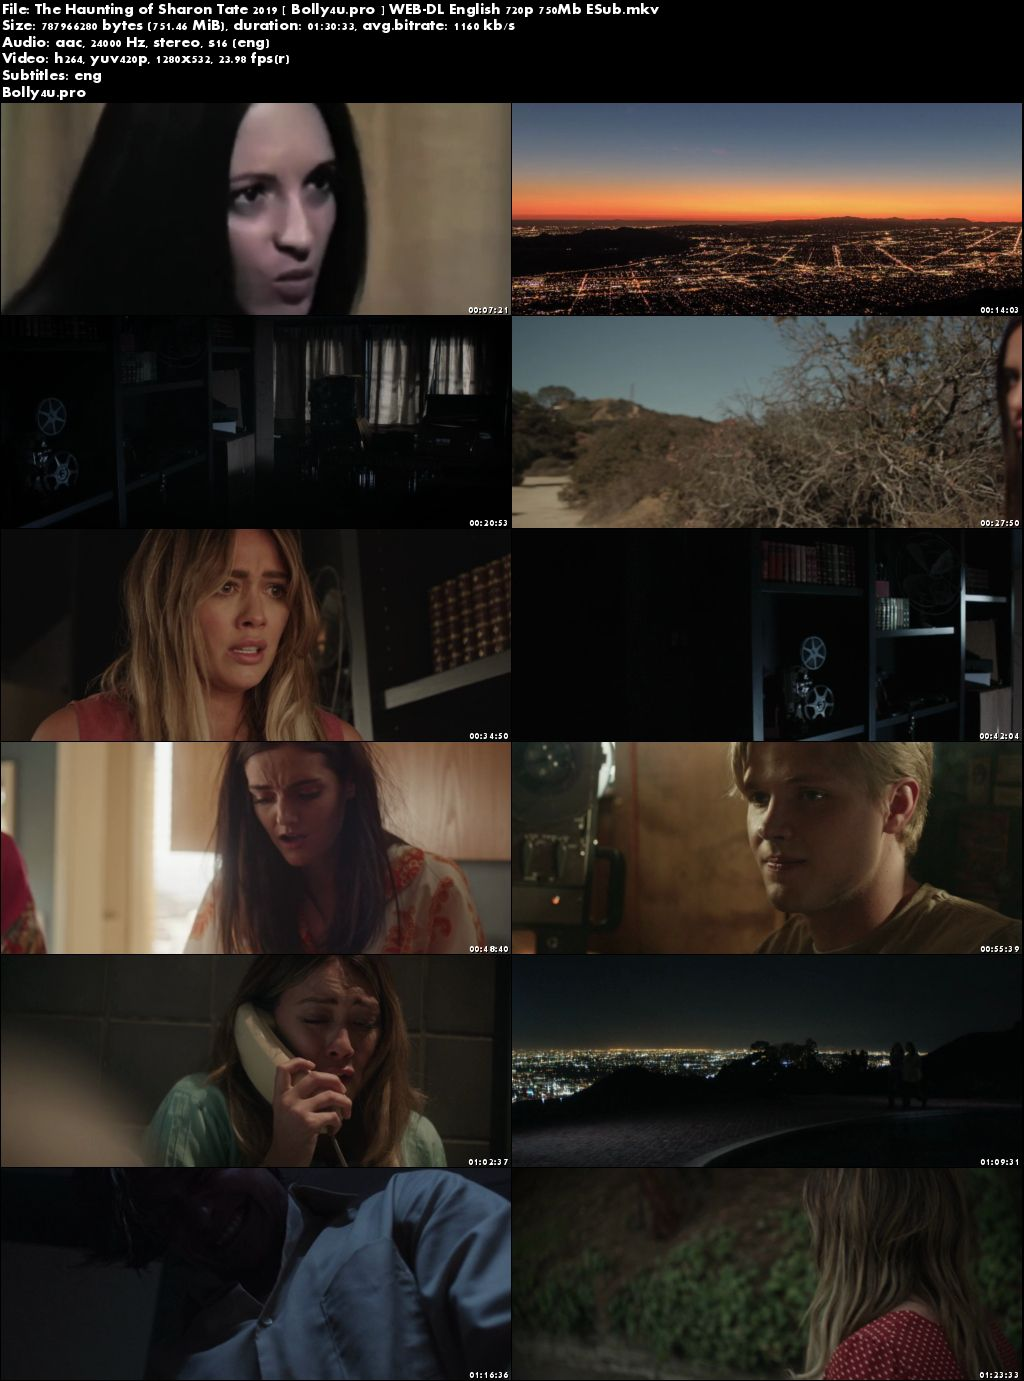 The Haunting of Sharon Tate 2019 WEB-DL 750MB English ESub Download